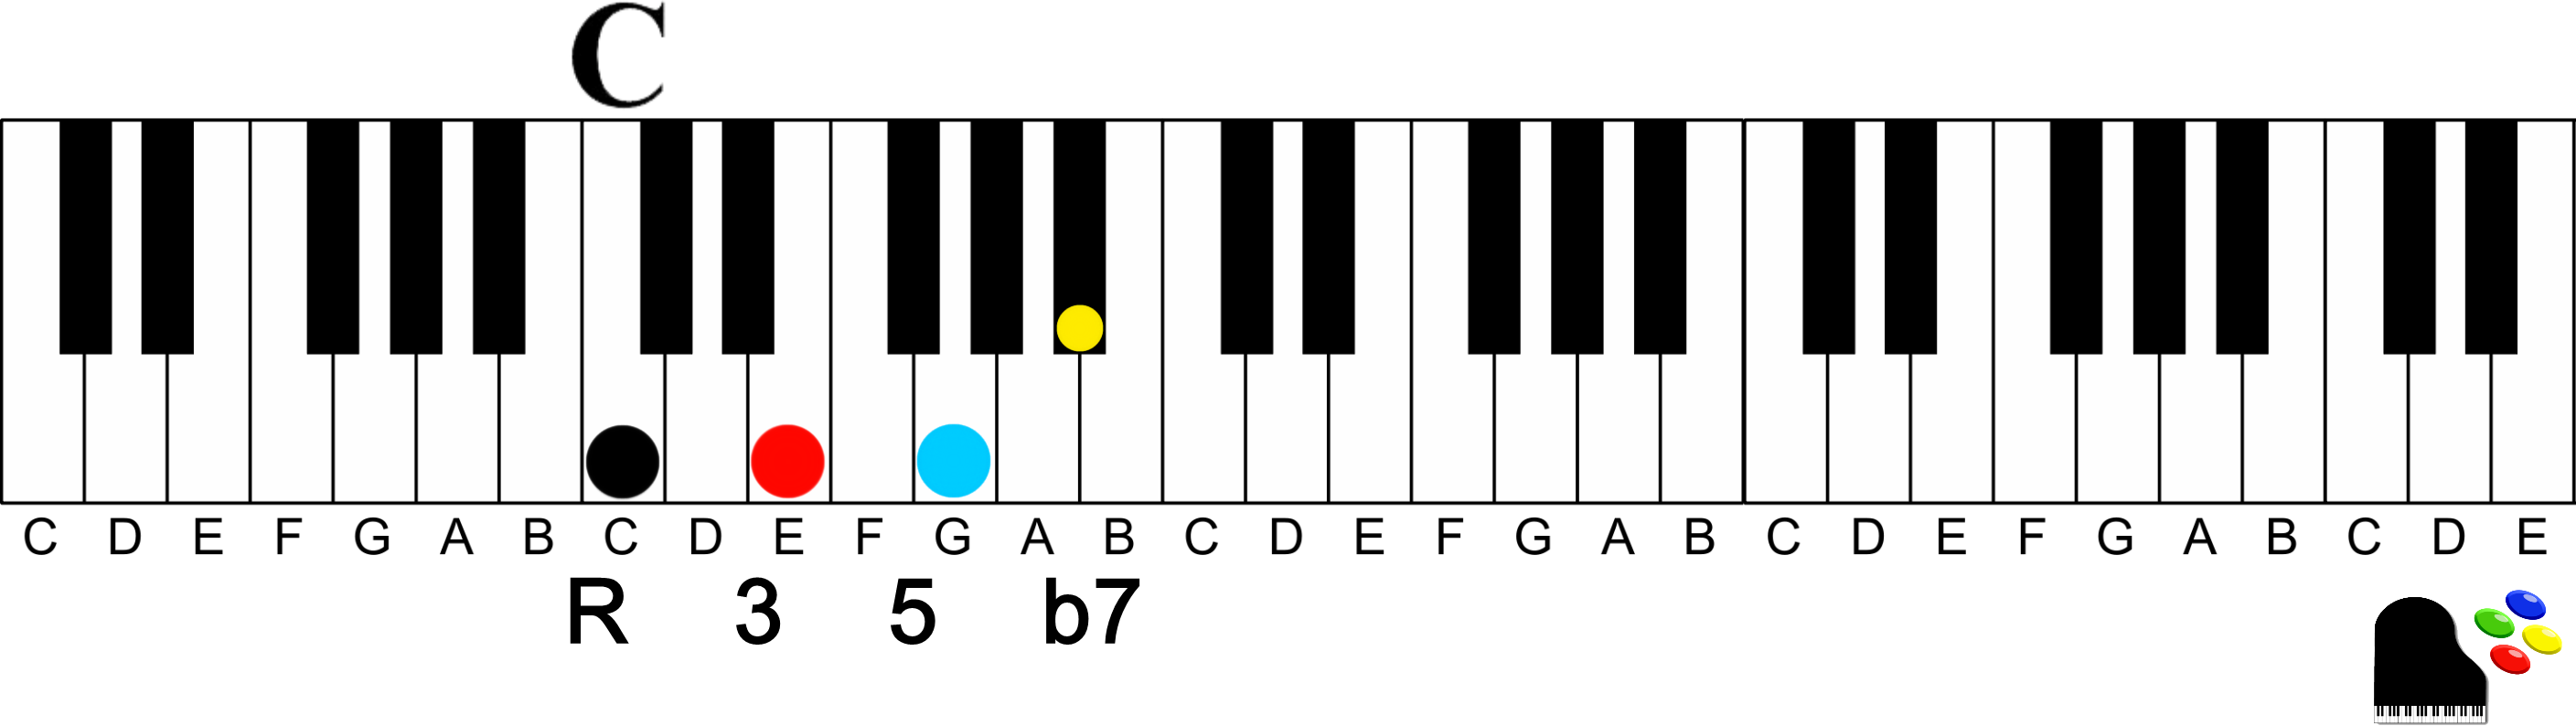 How to easily play dominant 7th chords on the piano c dominant 7th chord how to easily play dominant 7th chords on the piano hexwebz Gallery